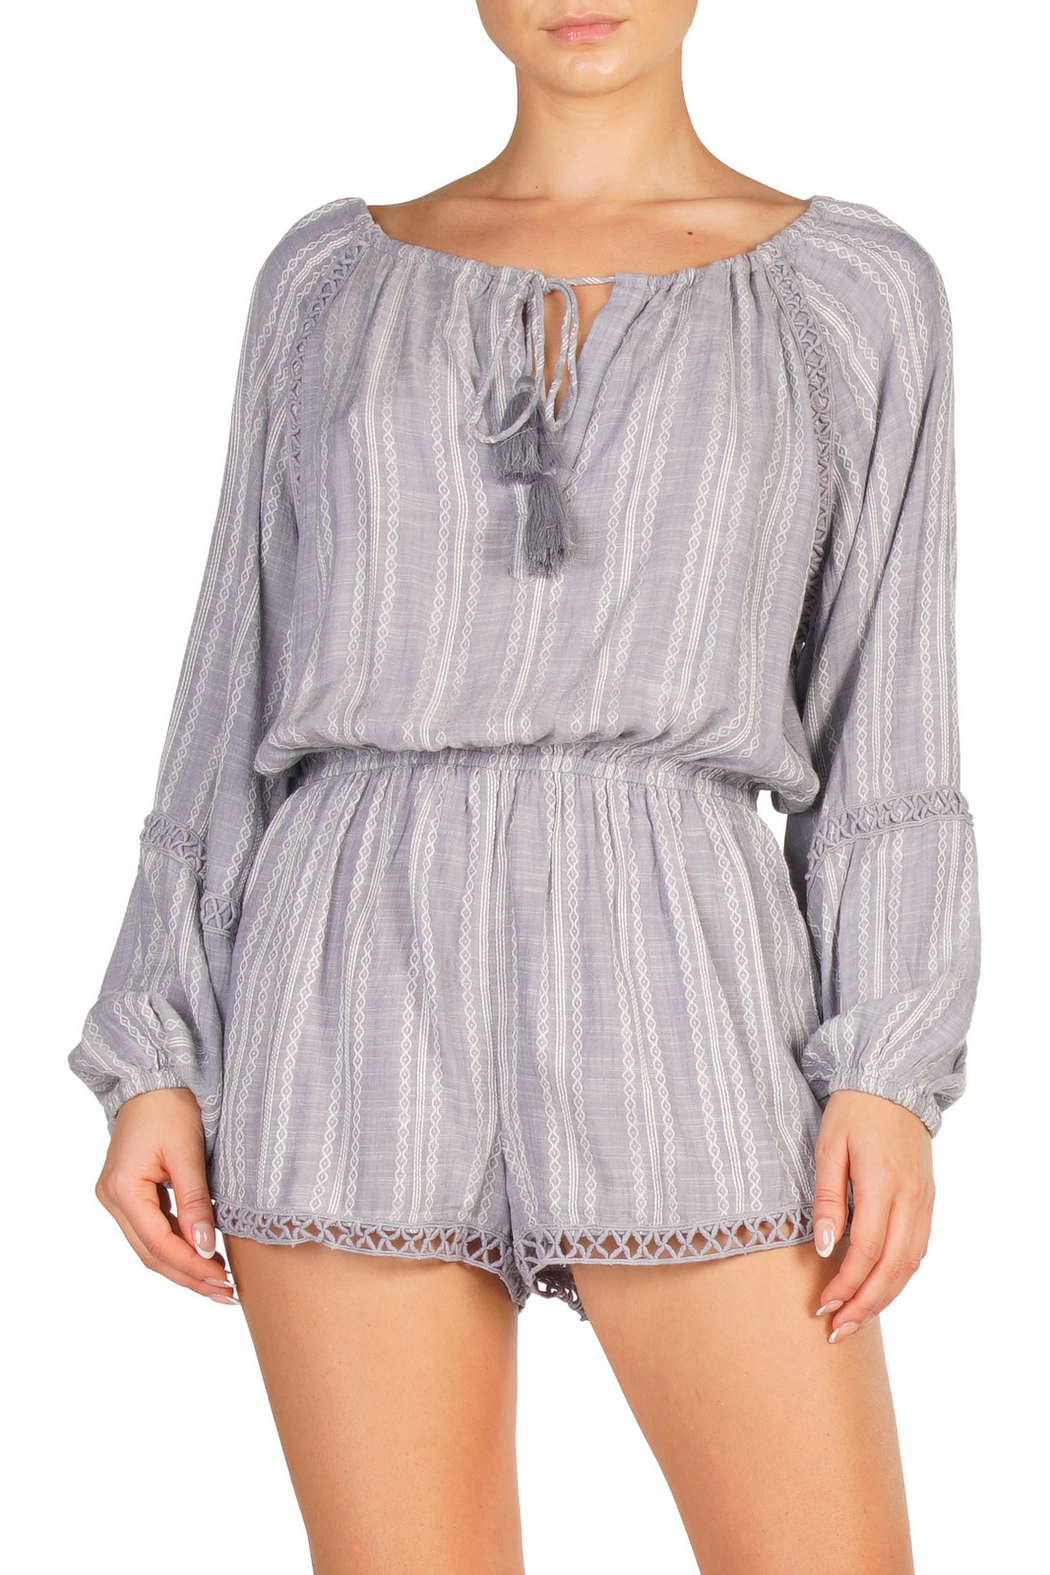 Elan Denim Stripe Romper - Main Image